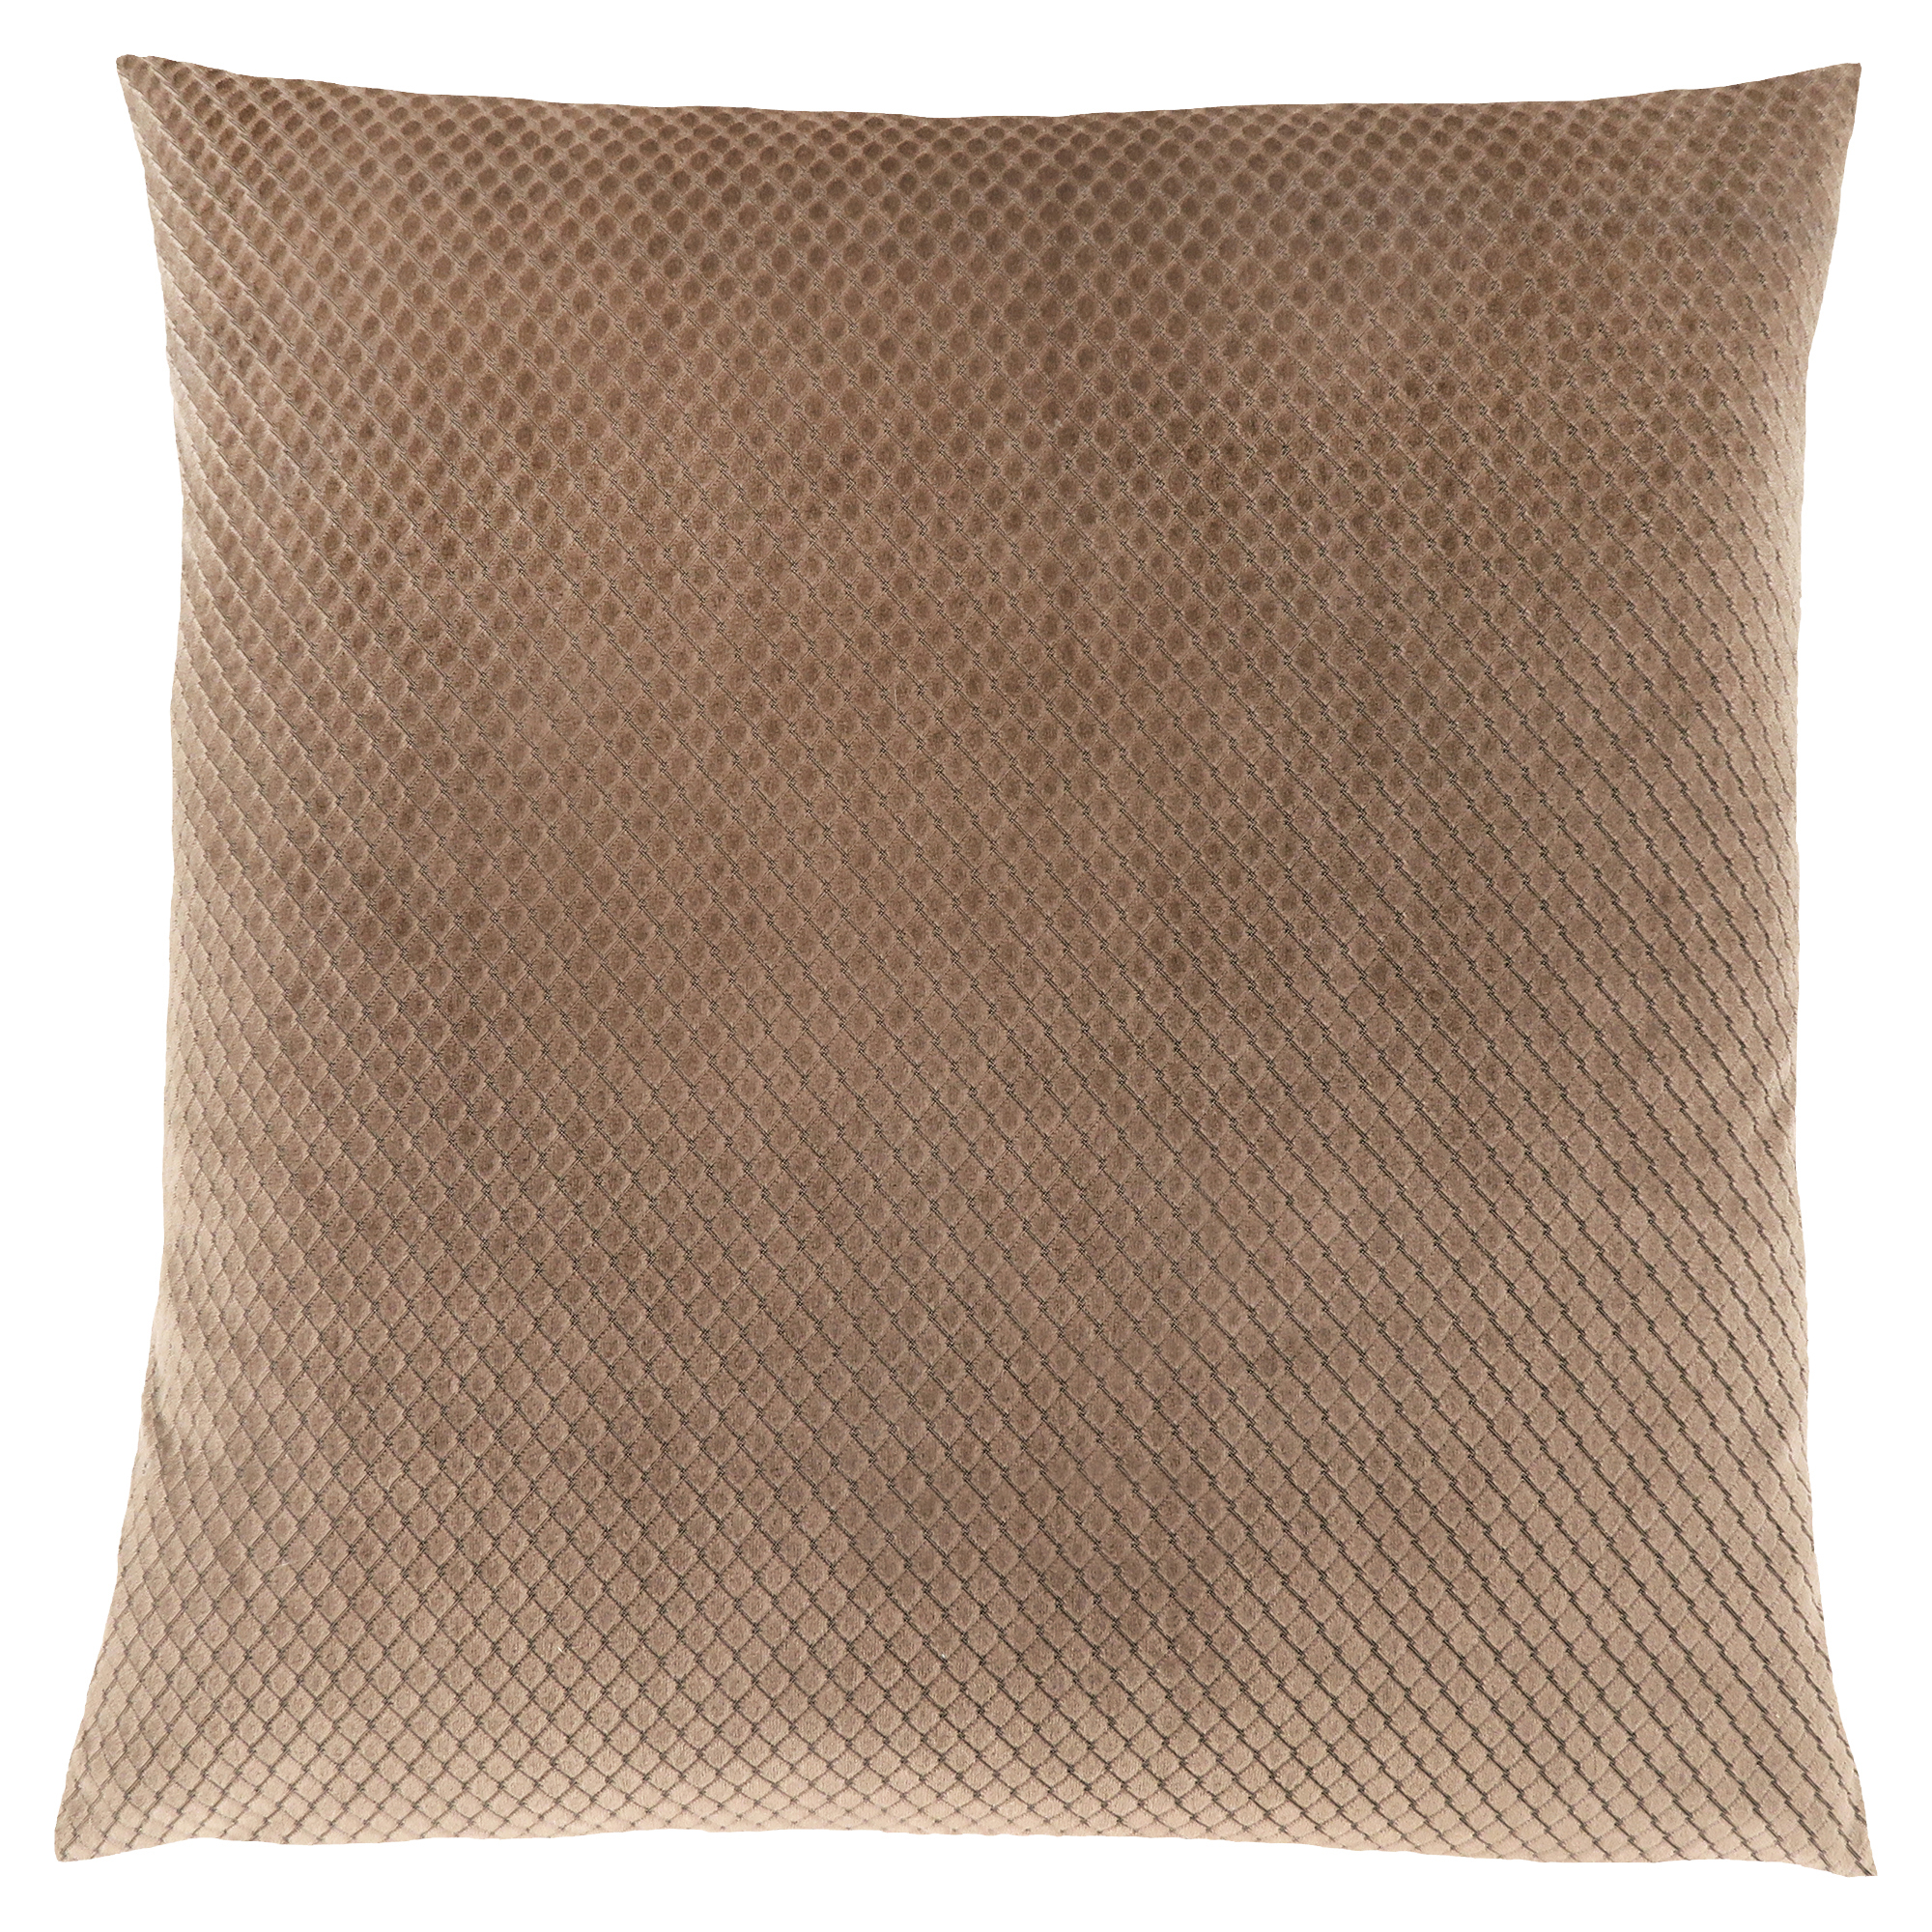 "PILLOW - 18""X 18"" / BEIGE DIAMOND VELVET / 1PC"